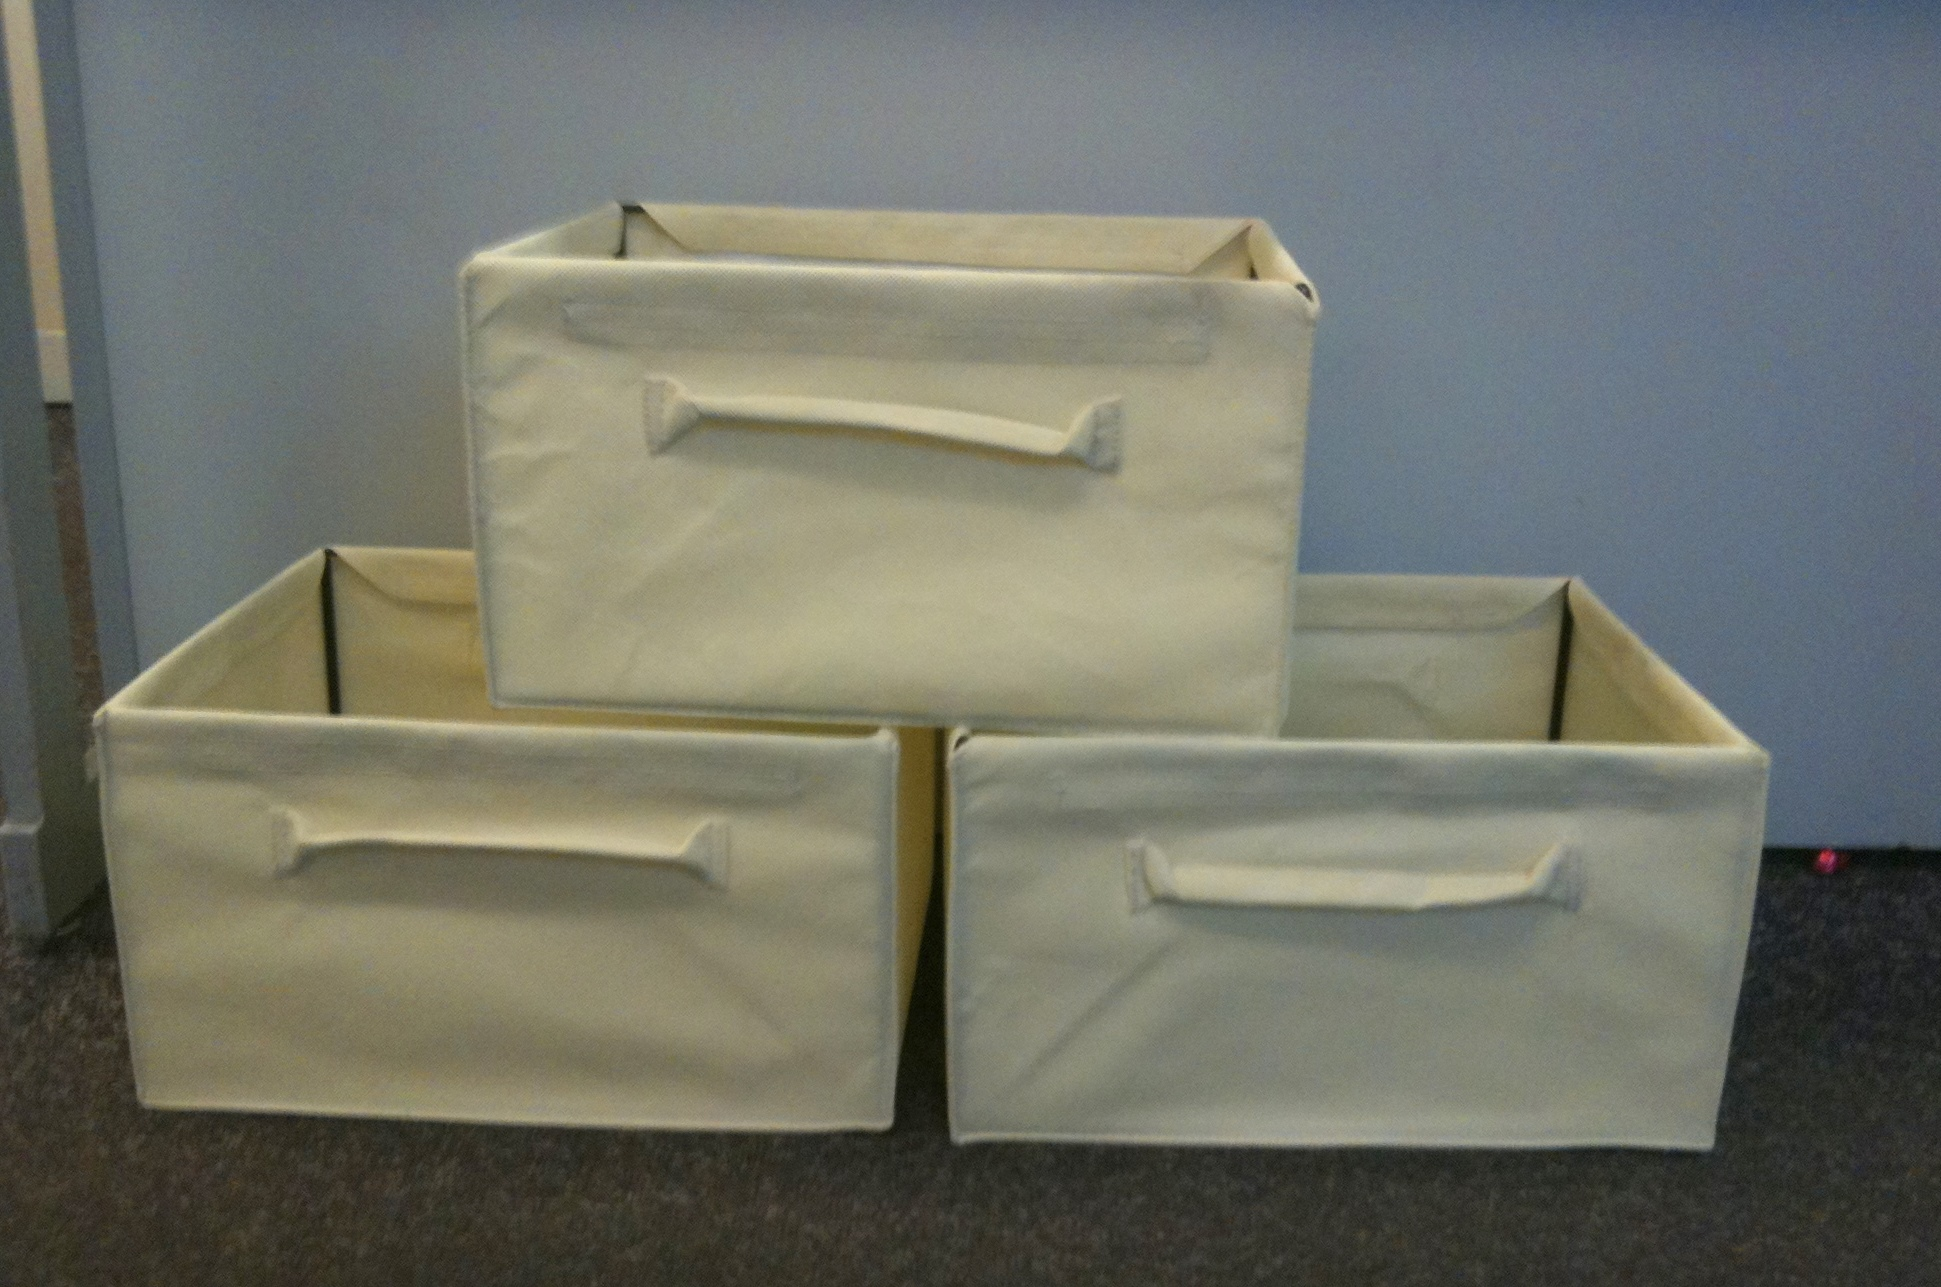 Canvas Storage Boxes For Wardrobes: SET OF 2 CANVAS STORAGE BOXES. UNDERBED. WARDROBES